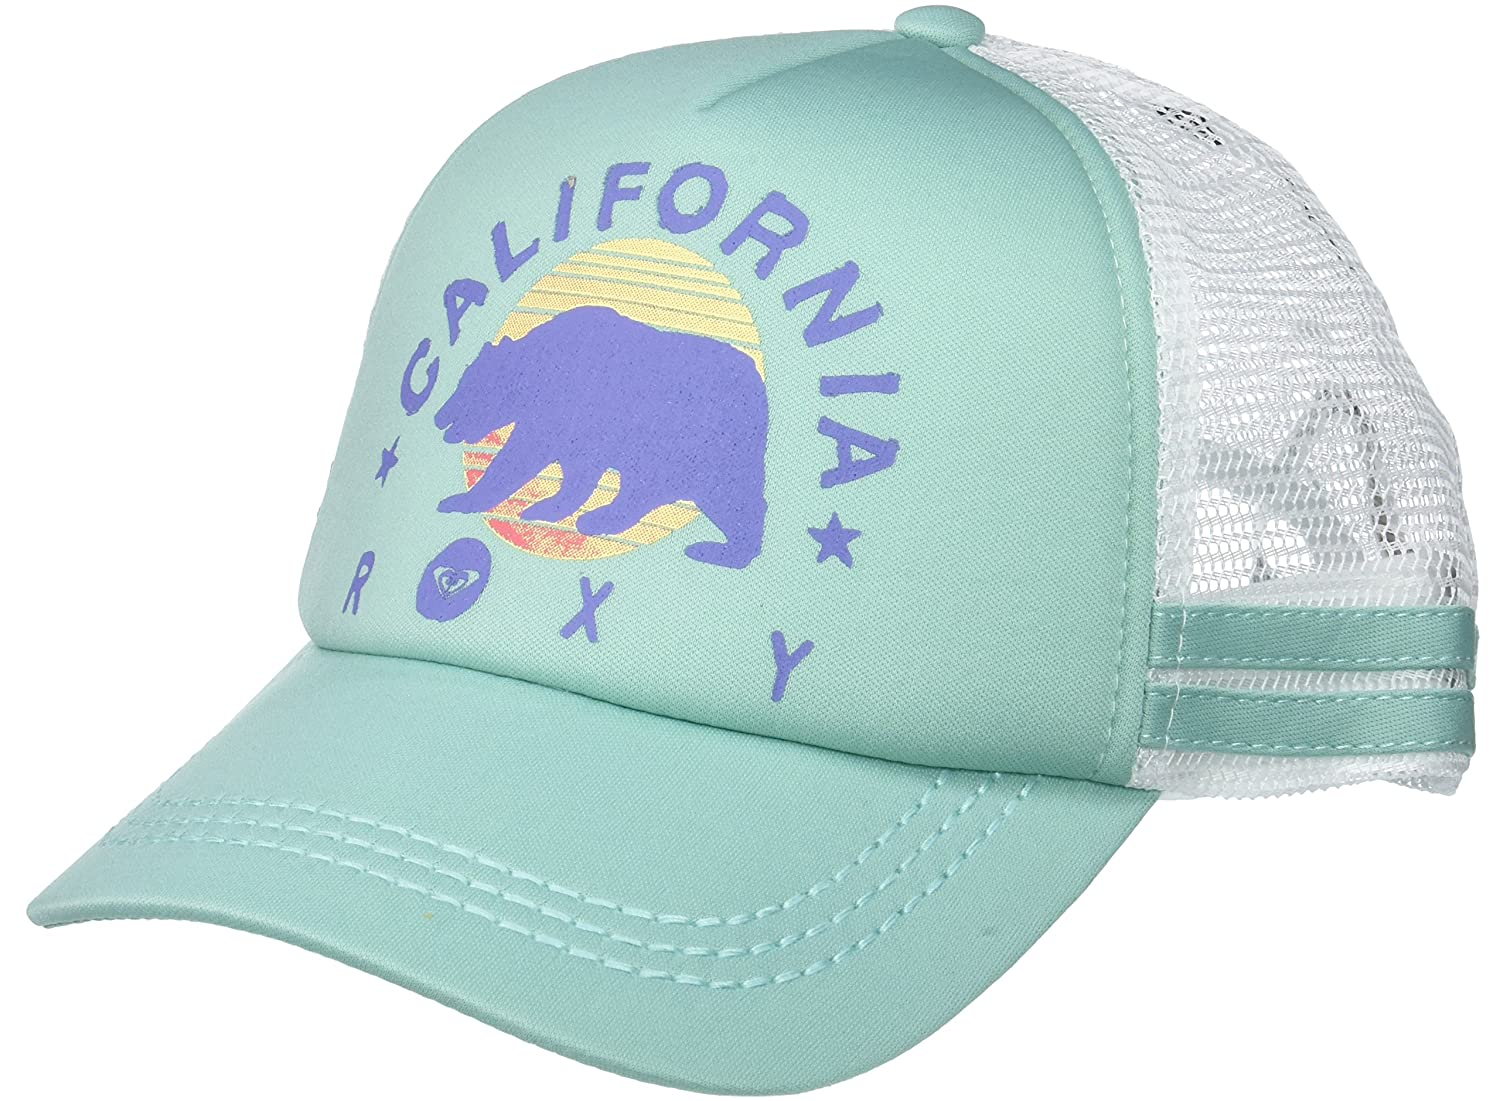 Roxy Women s California Dig This Trucker Hat 2a99977ebe